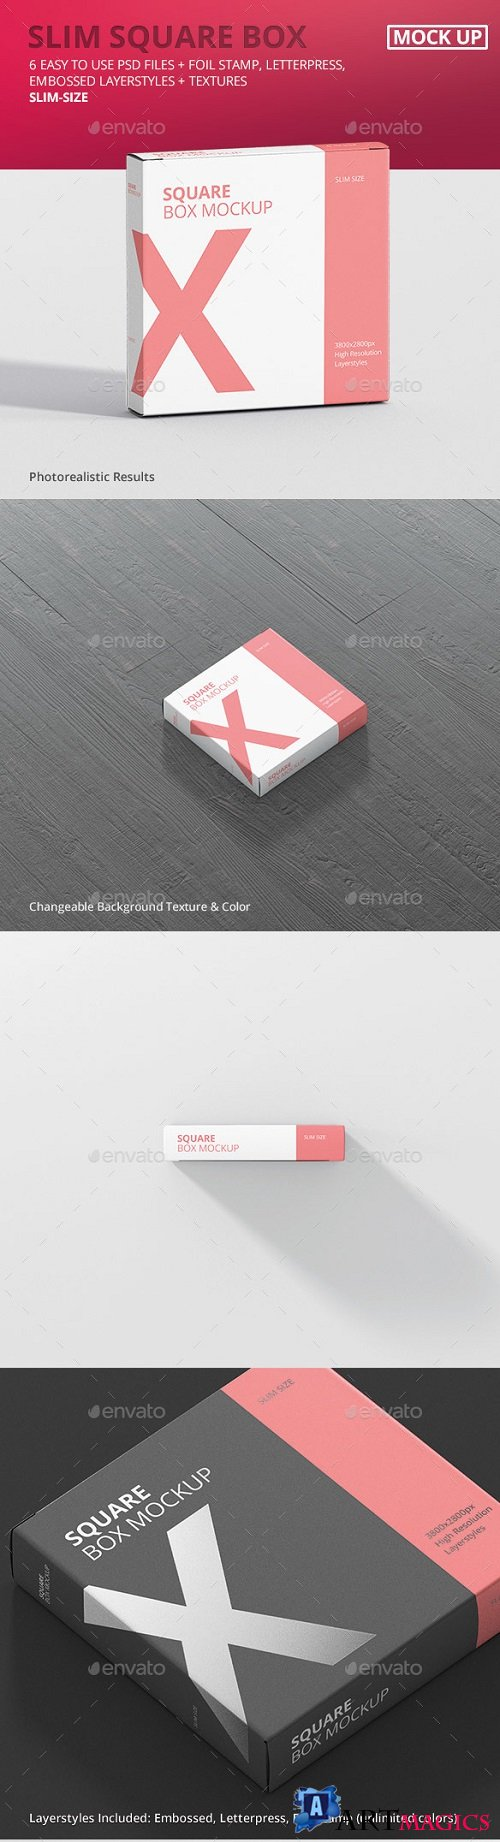 Box Mockup - Square Slim Size - 21010240